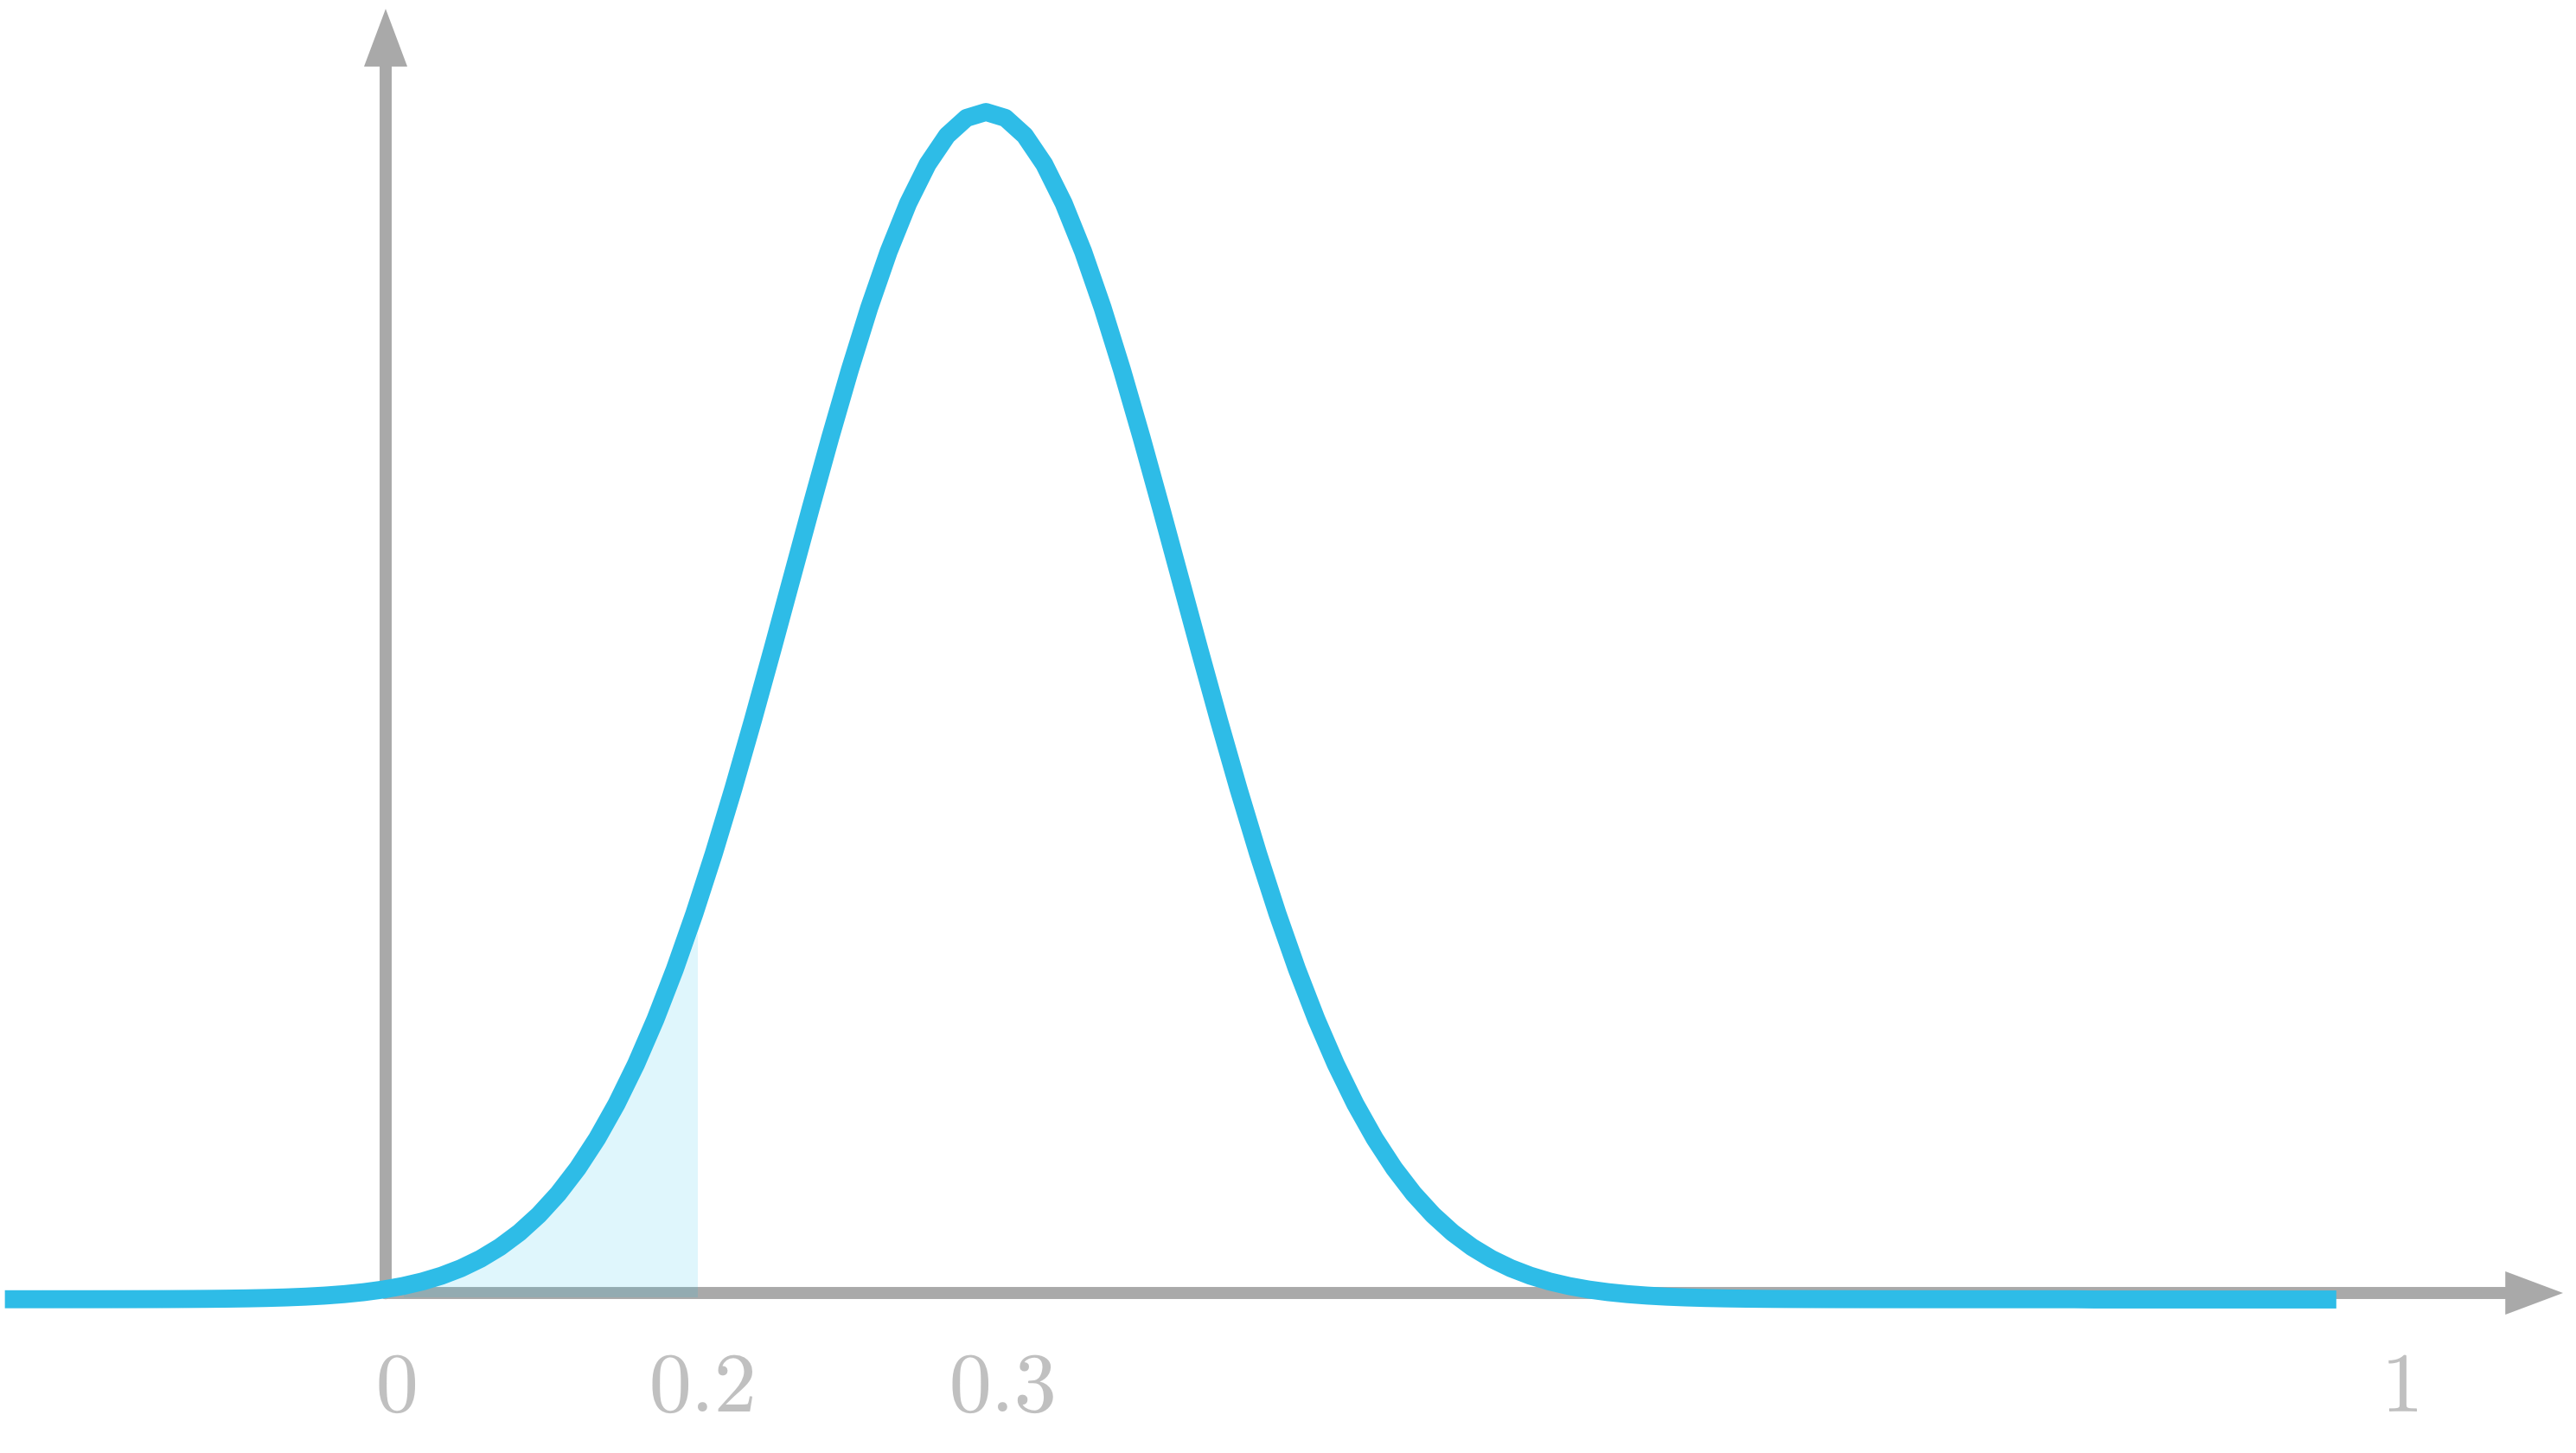 Figure 5: The probability to draw a number between 0 and 0.2 is the highlighted area under the curve.